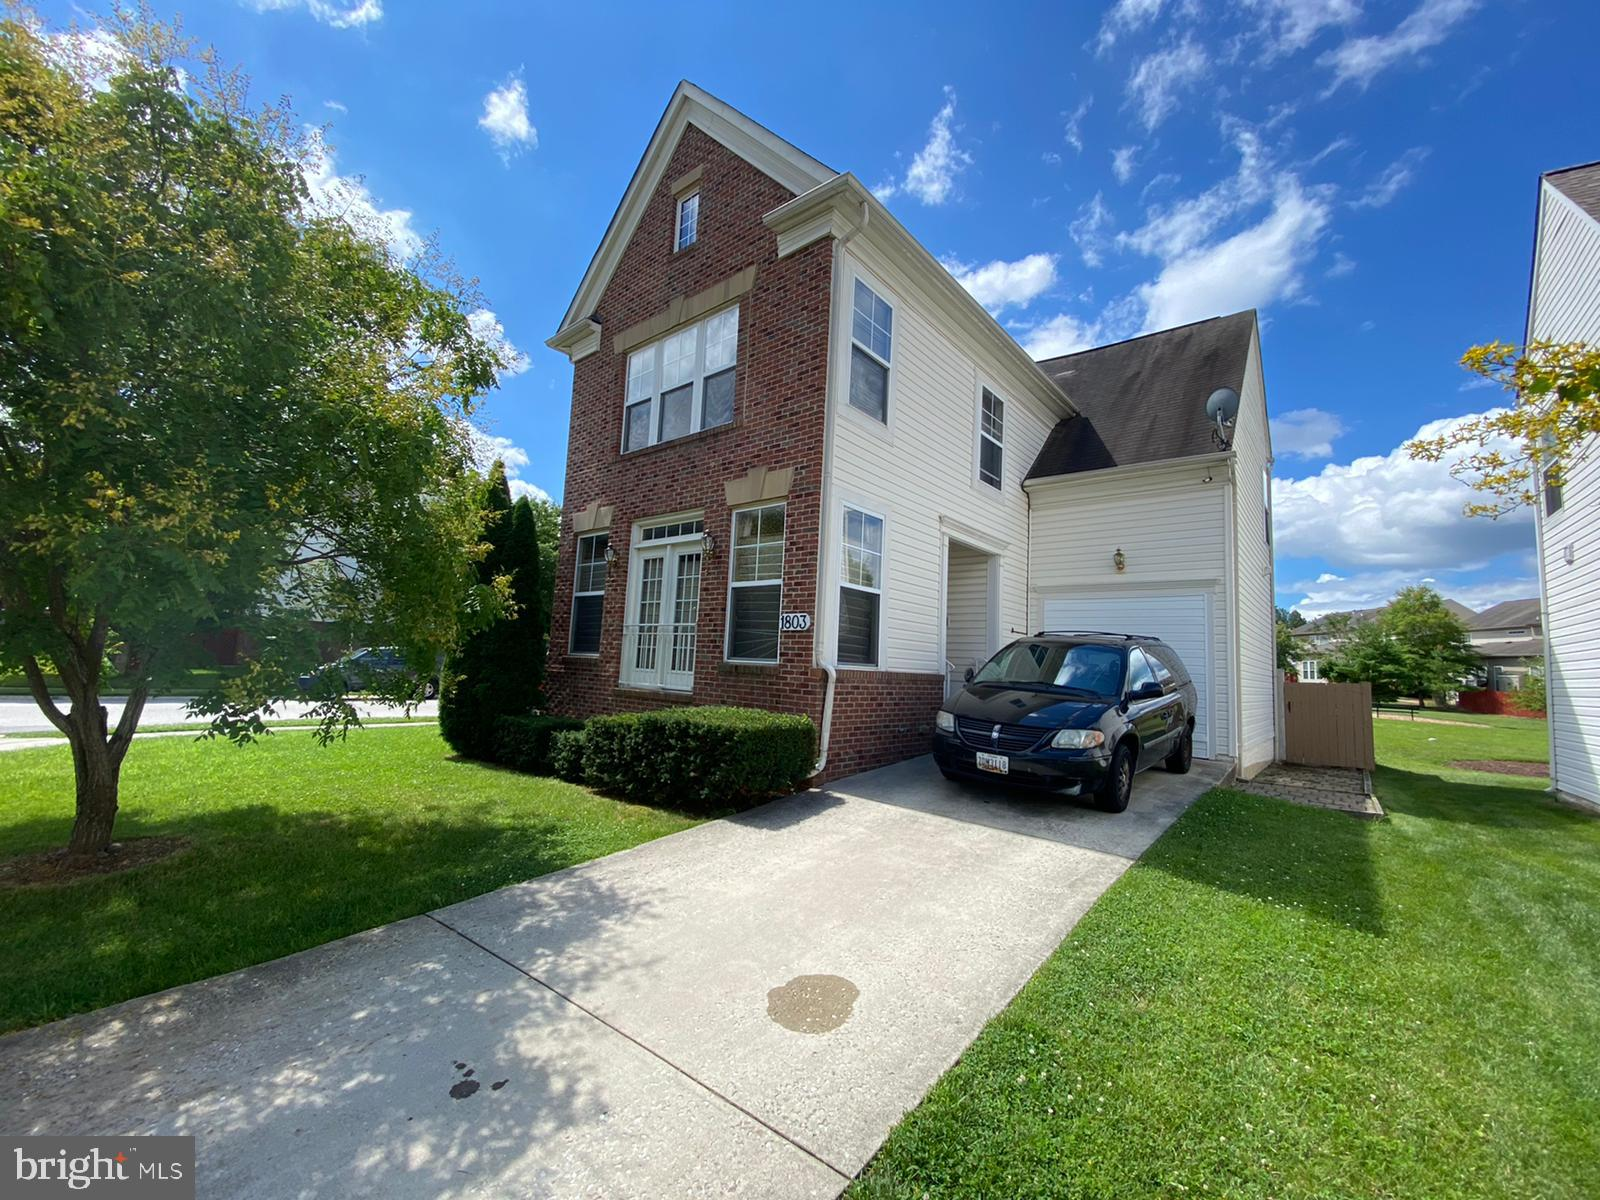 Gorgeous, well-maintained colonial home with four bedrooms, 3.5 baths closely located near the MARC